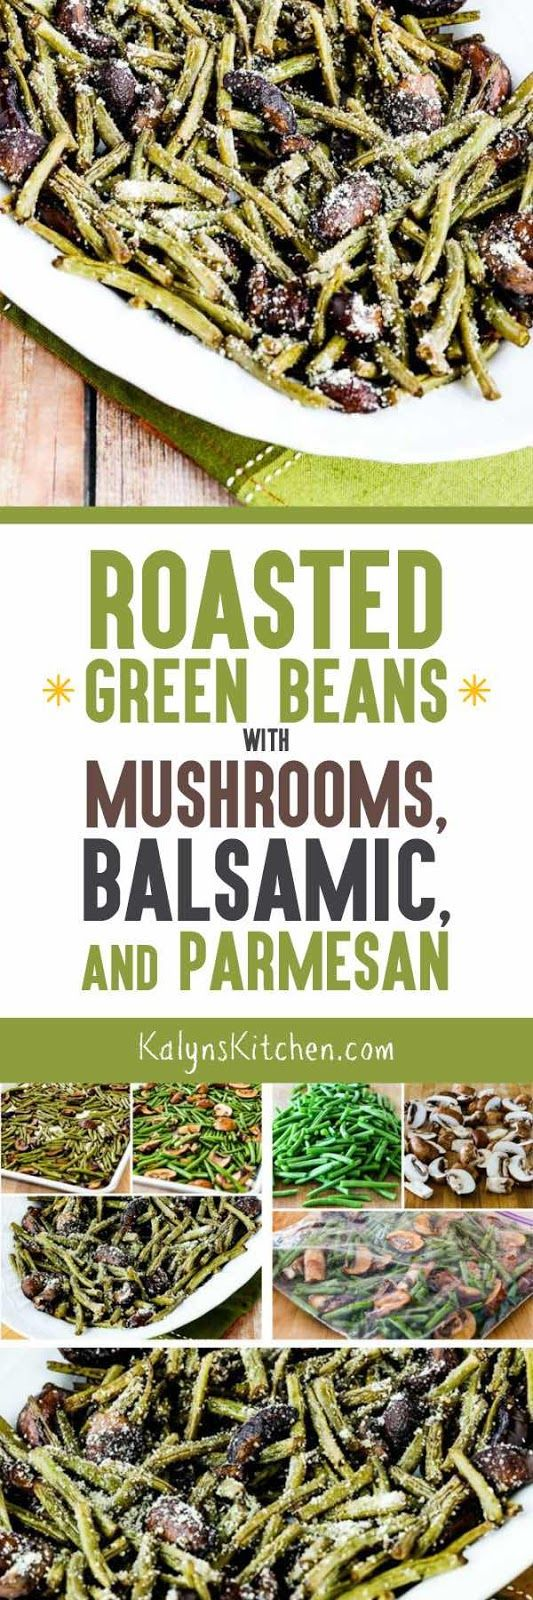 These amazing Roasted Green Beans with Mushrooms, Balsamic, and Parmesan have been pinned over 1.5 MILLION times, and this is one of the most popular holiday recipes on my blog. And these amazing green beans are not only delicious, they're also low-carb, gluten-free, and super easy to make!  [found on KalynsKitchen.com]